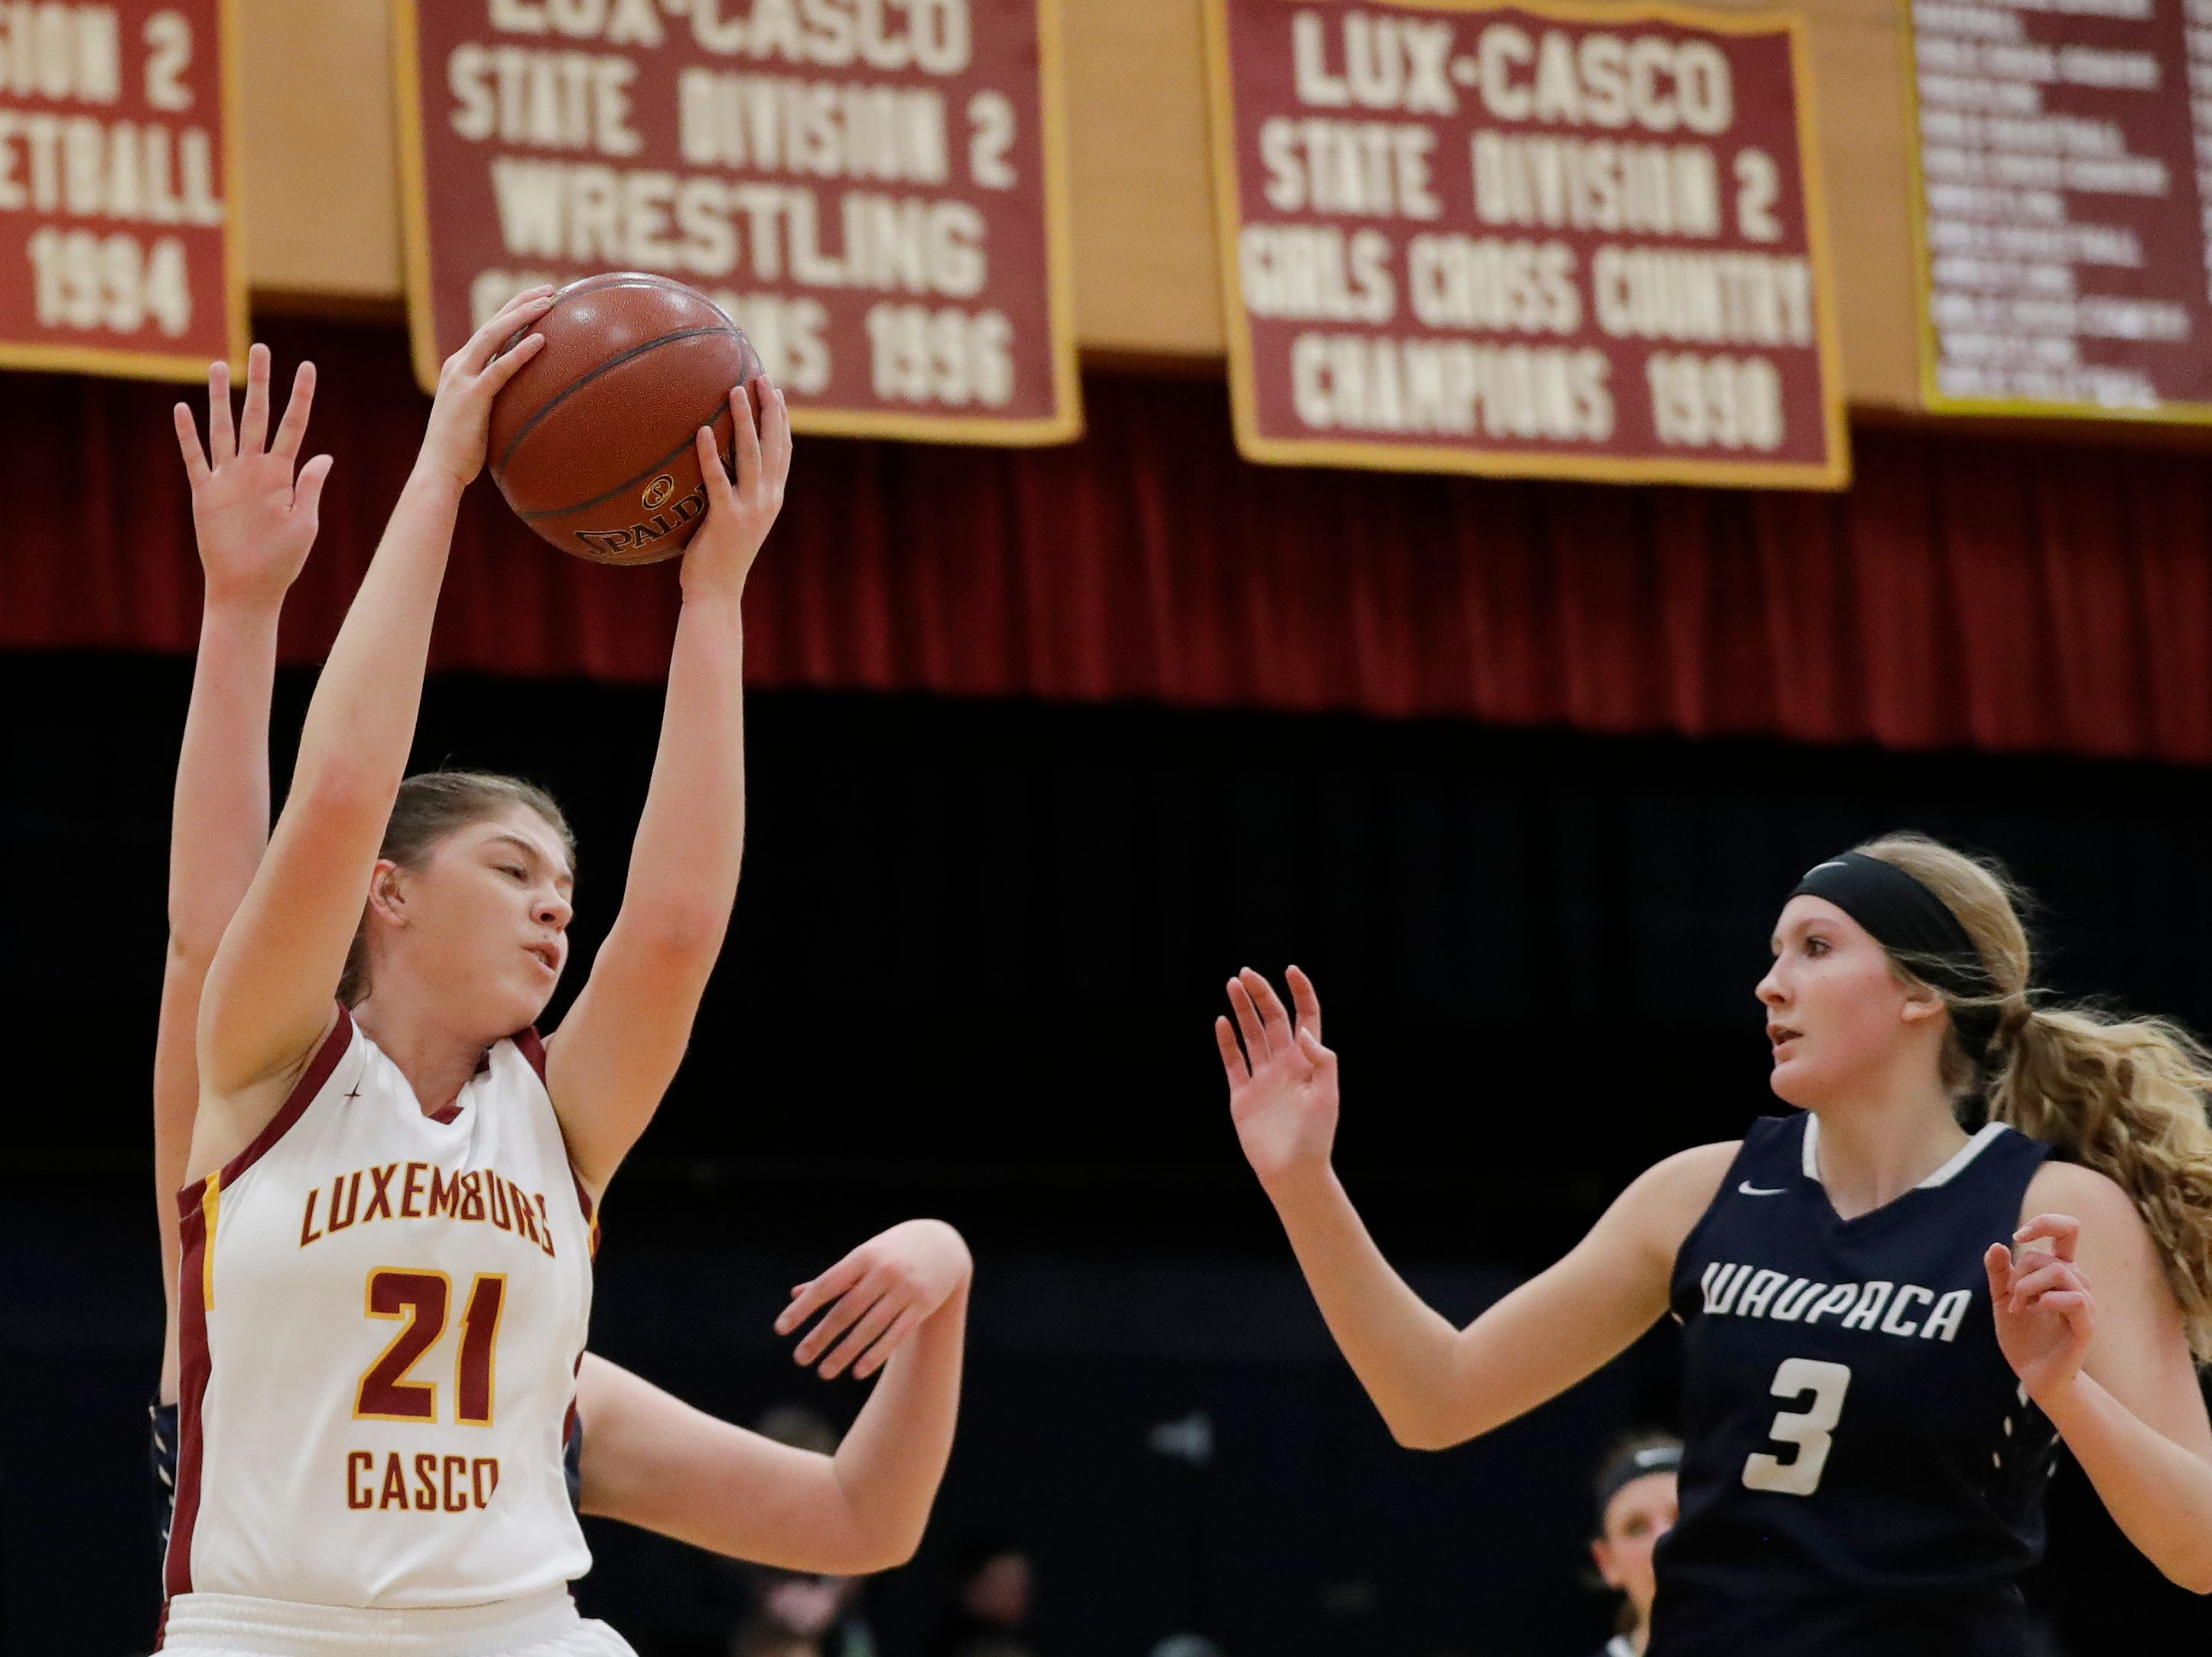 Luxemburg-Casco's Paige Skubal (21) grabs a rebound against Waupaca's Kalyn Klug (3) in a girls basketball game at Luxemburg-Casco high school on Thursday, January 10, 2019 in Luxemburg, Wis.